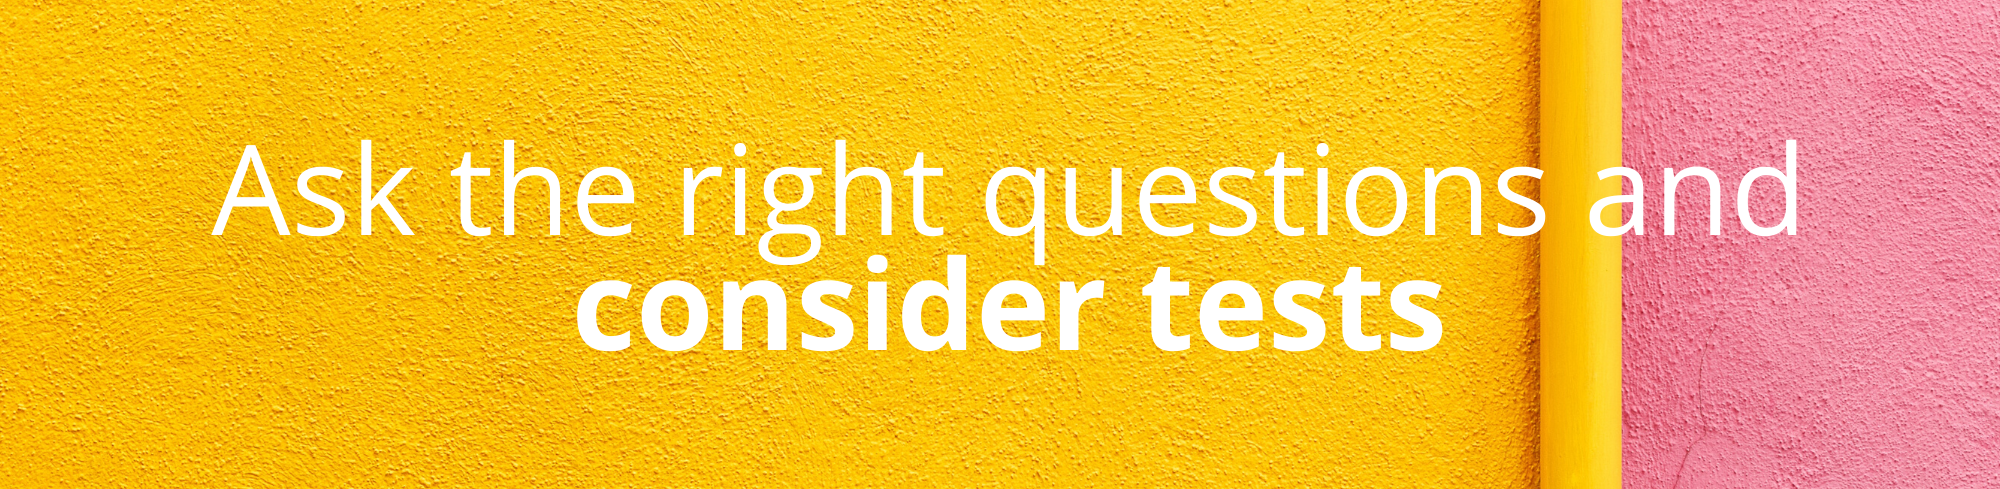 Ask the right questions and consider tests